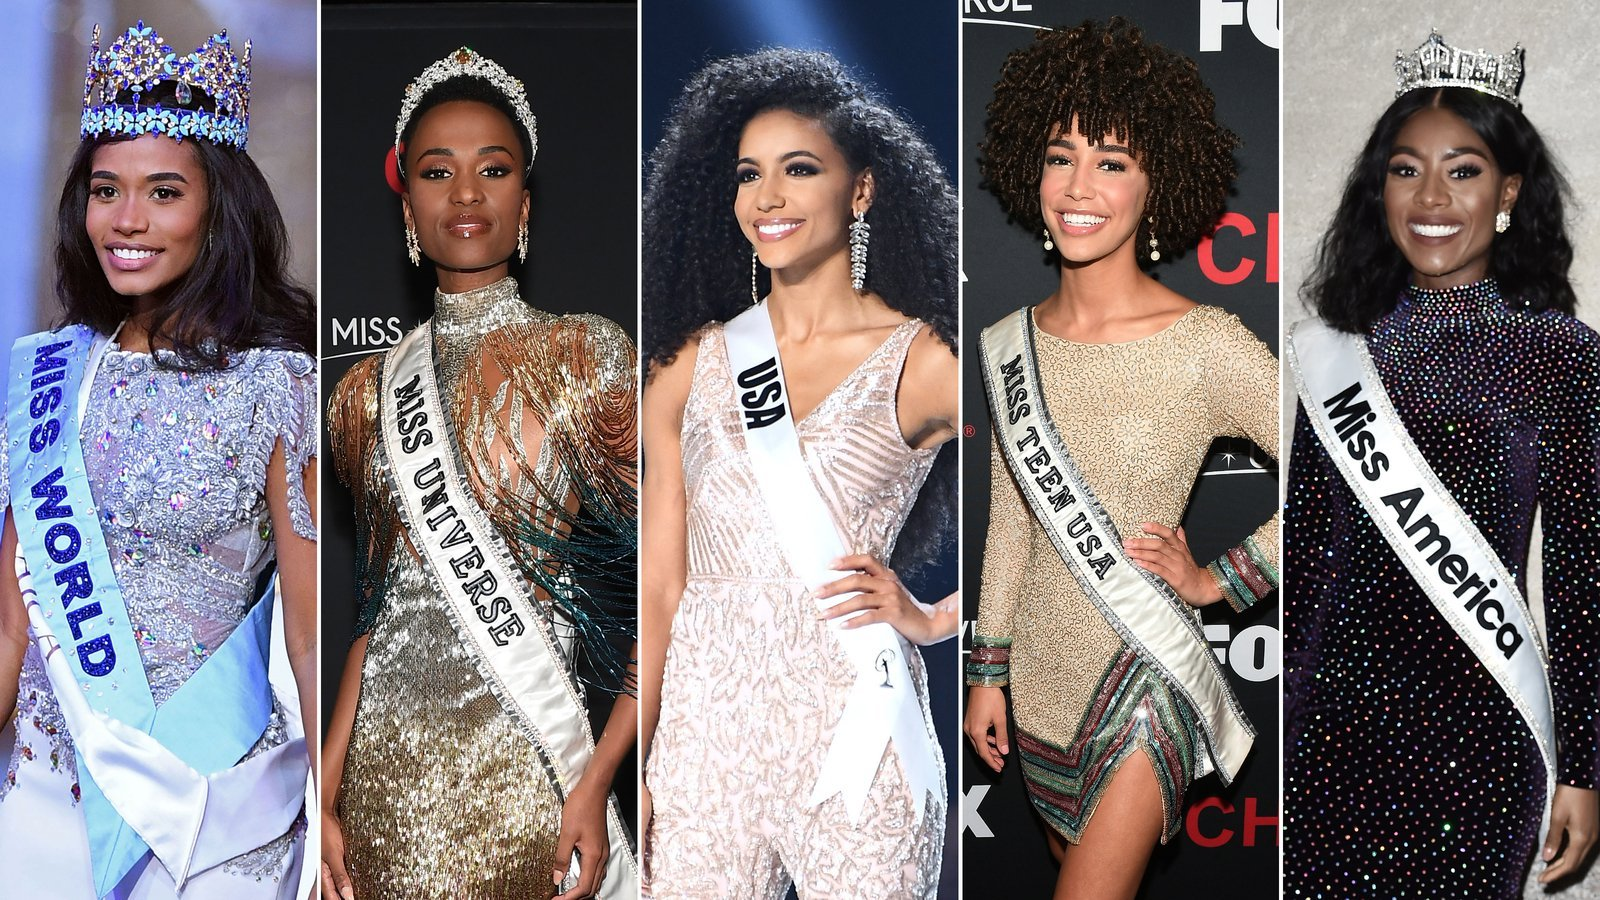 Miss Universe, Miss World, Miss America, Miss USA and Miss Teen USA are seen in Getty Images photos.